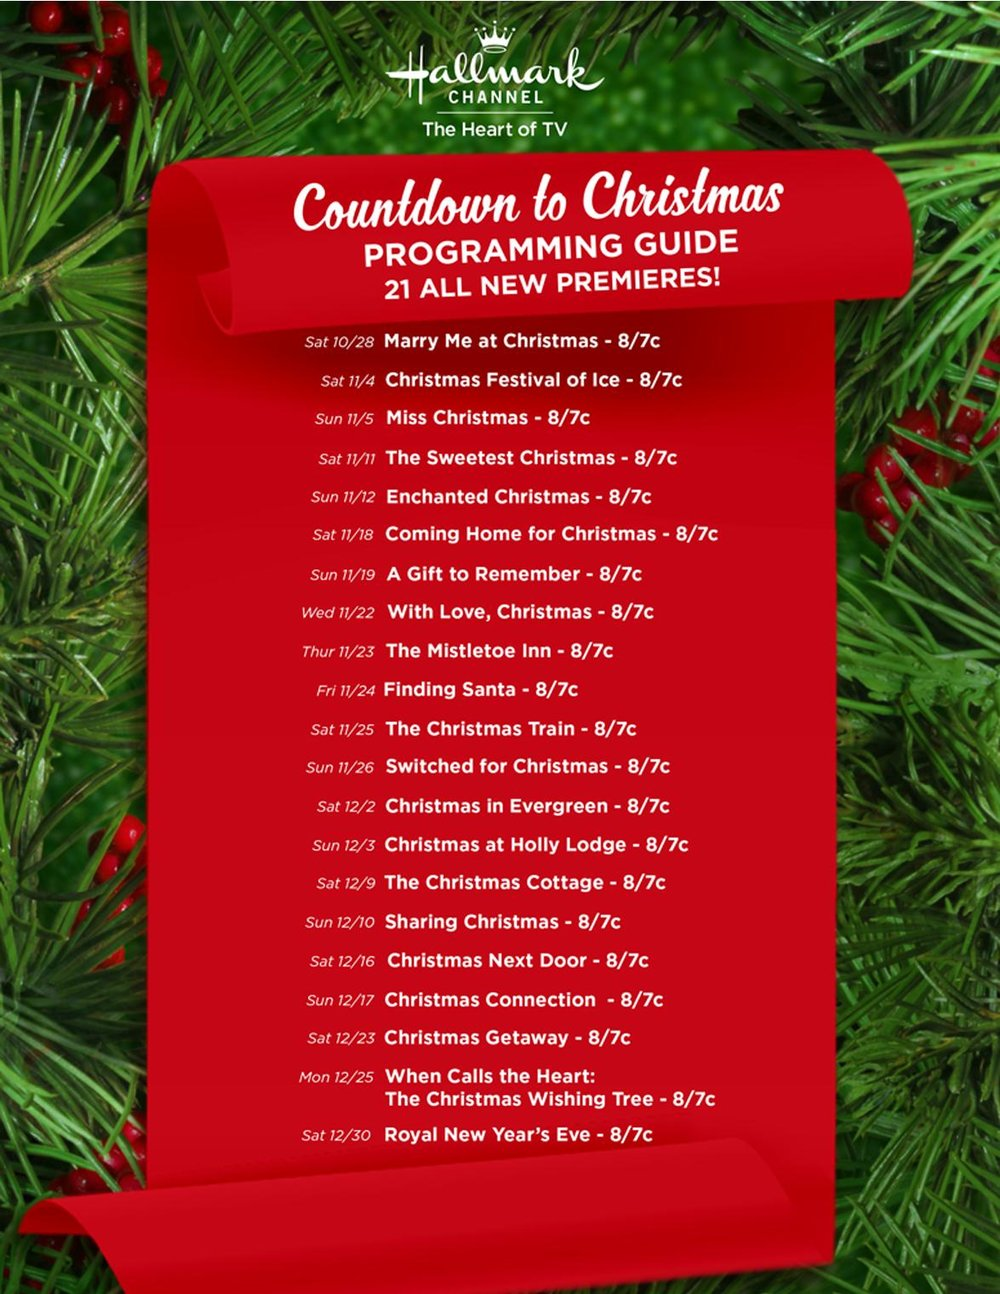 download-the-2017-countdown-to-christmas-schedule-page-001.jpg